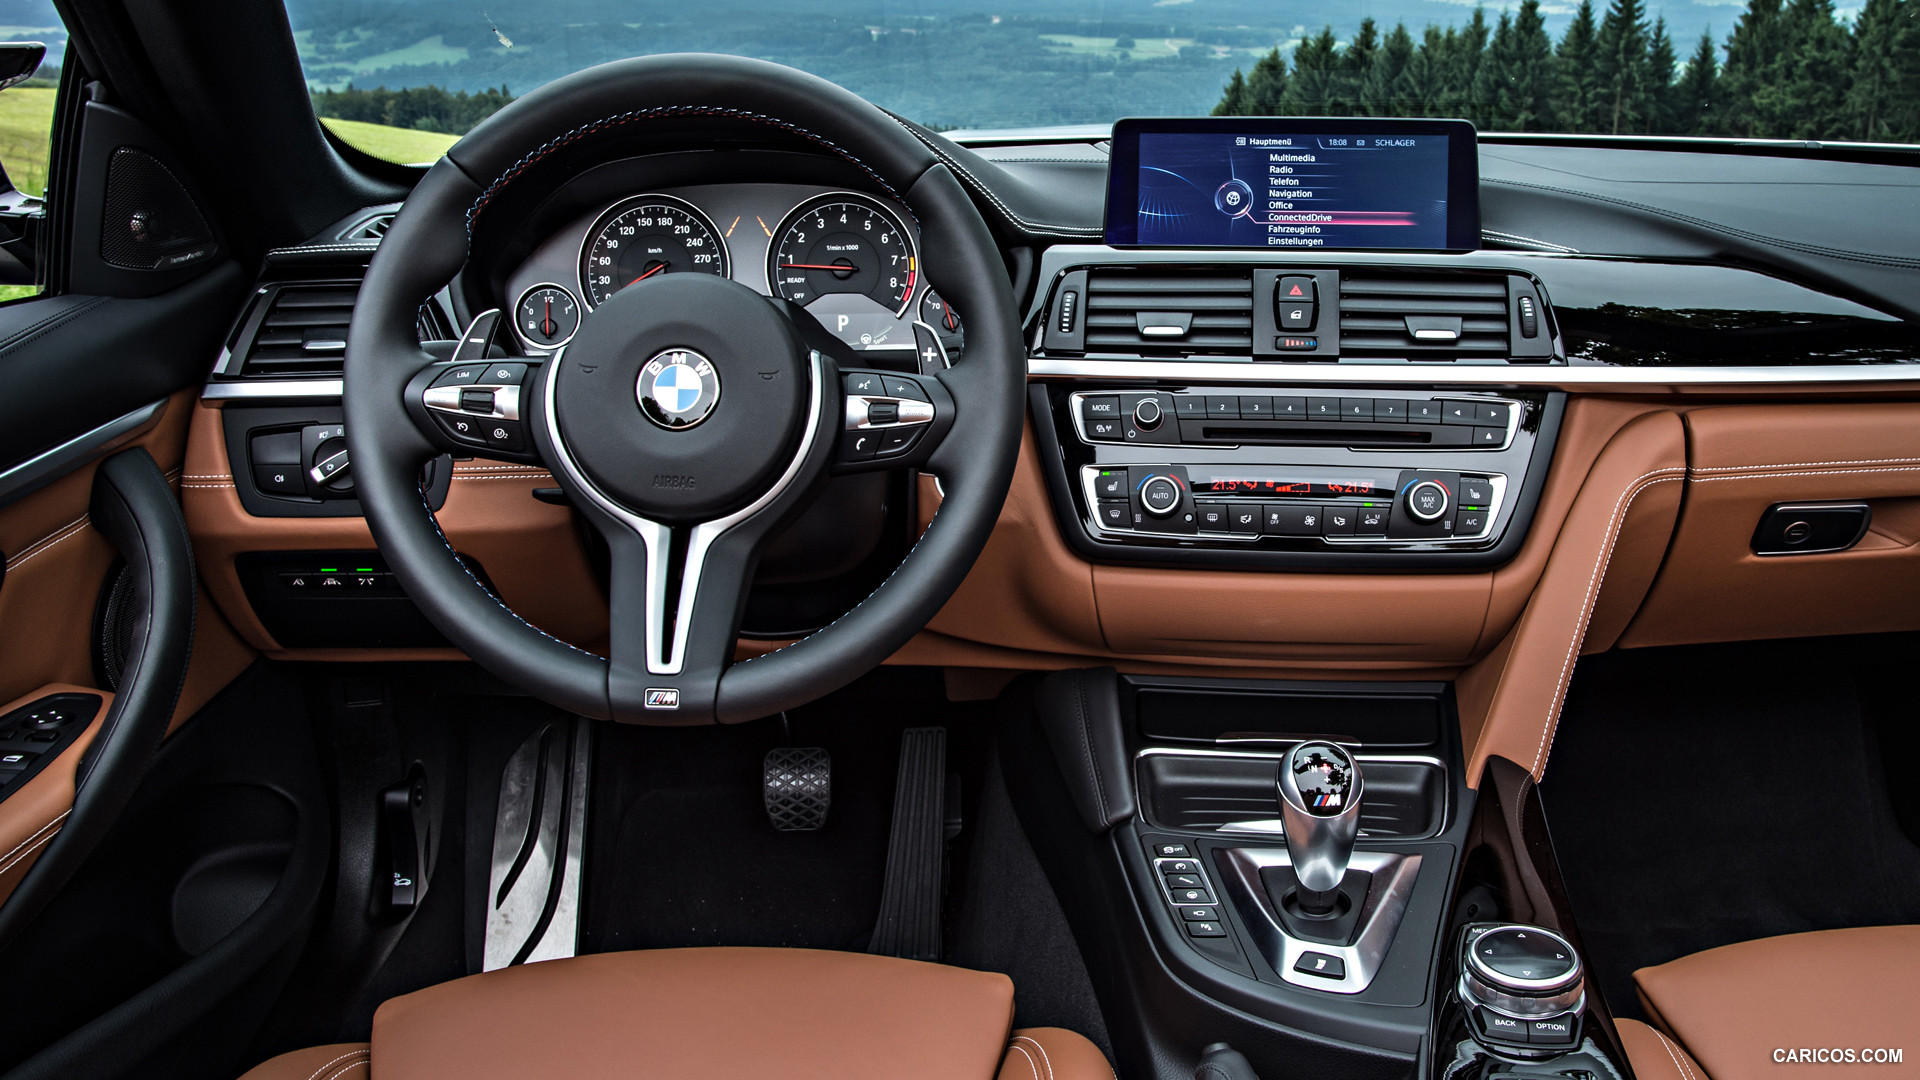 2015 BMW M4 Convertible - Interior Wallpaper